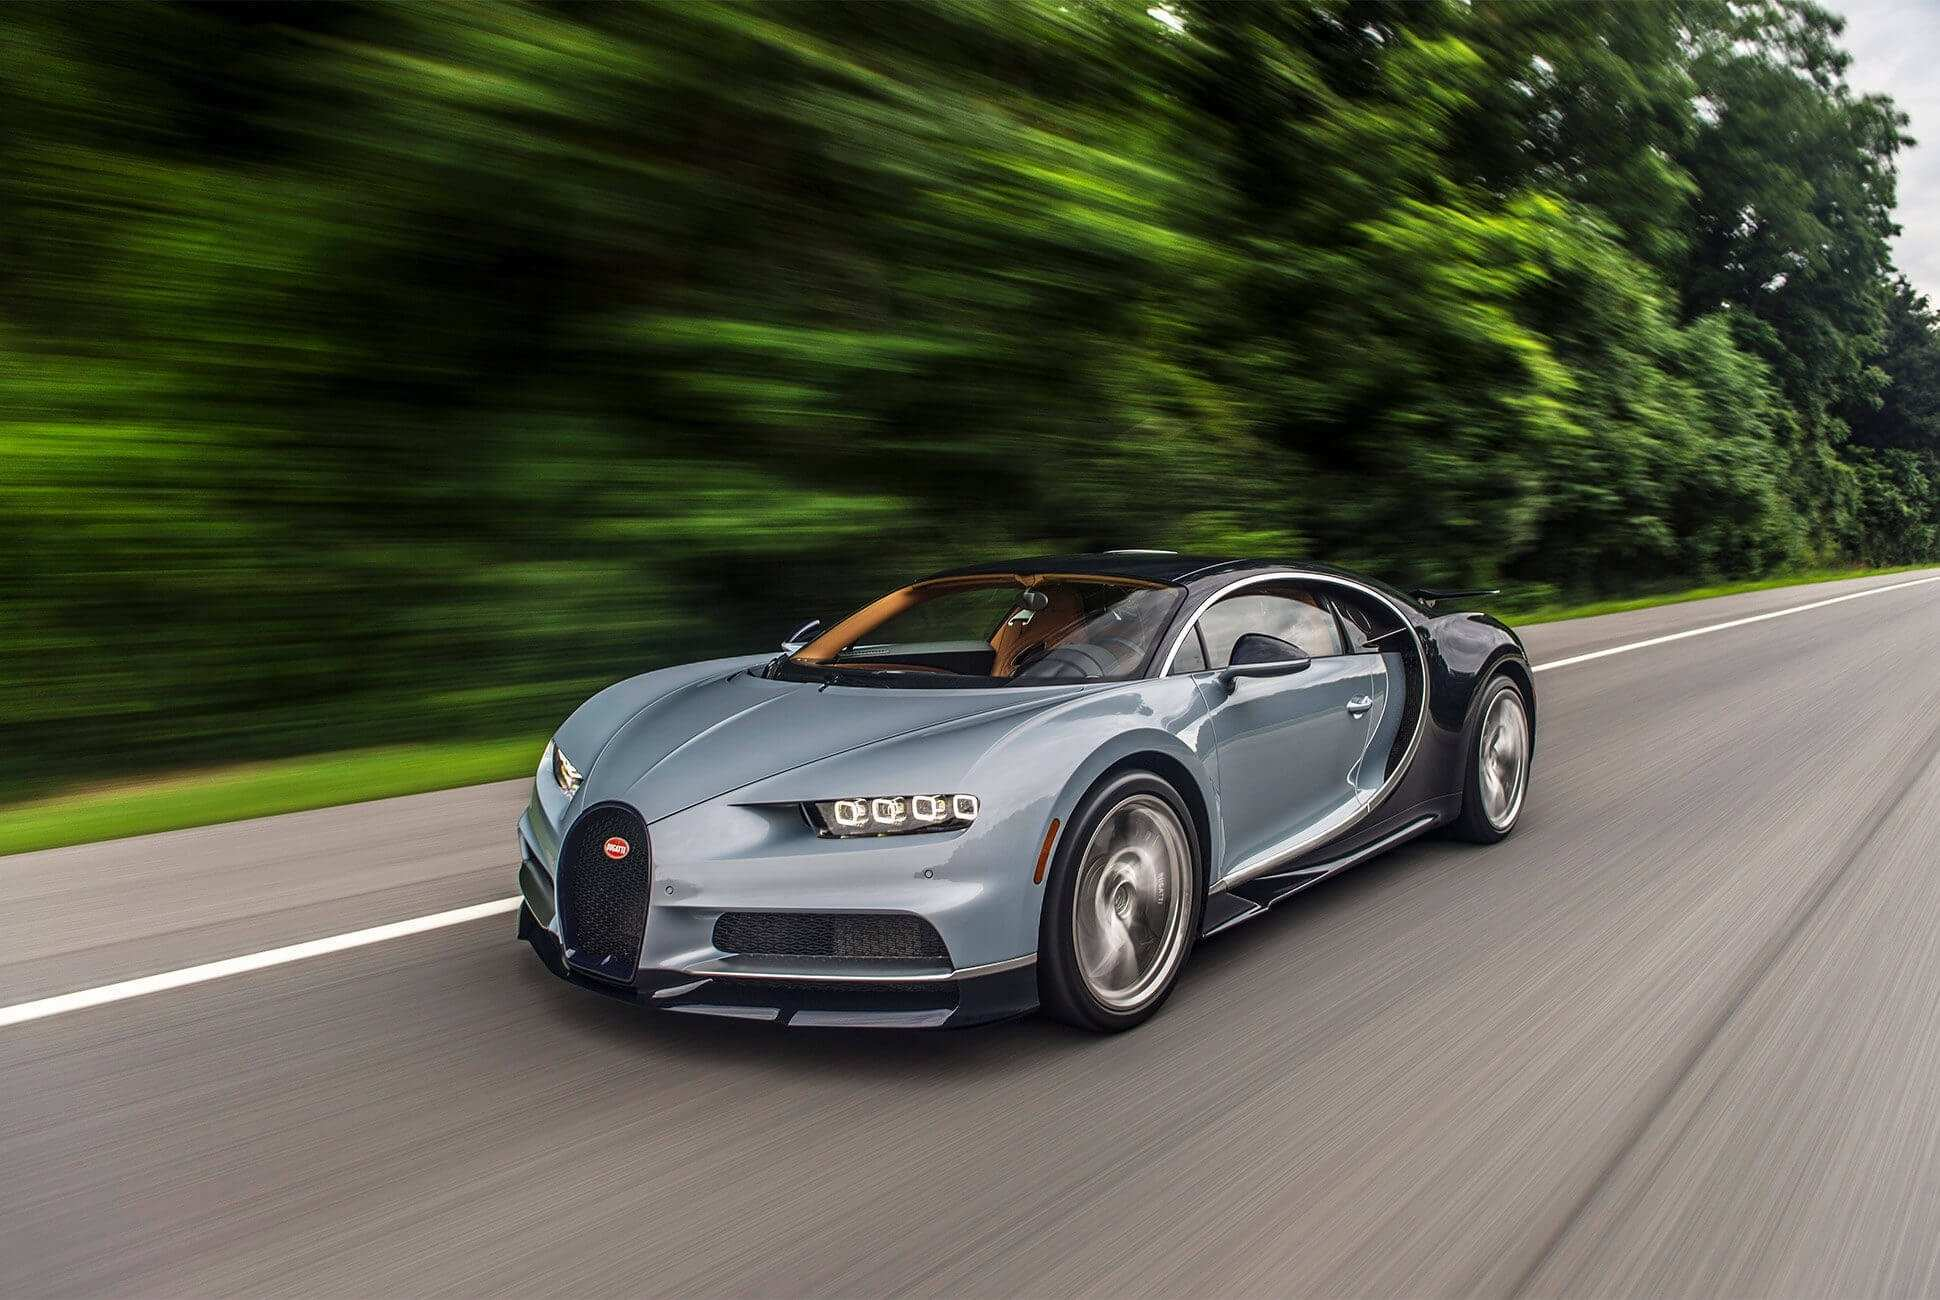 85 Concept of 2020 Bugatti Pricing for 2020 Bugatti